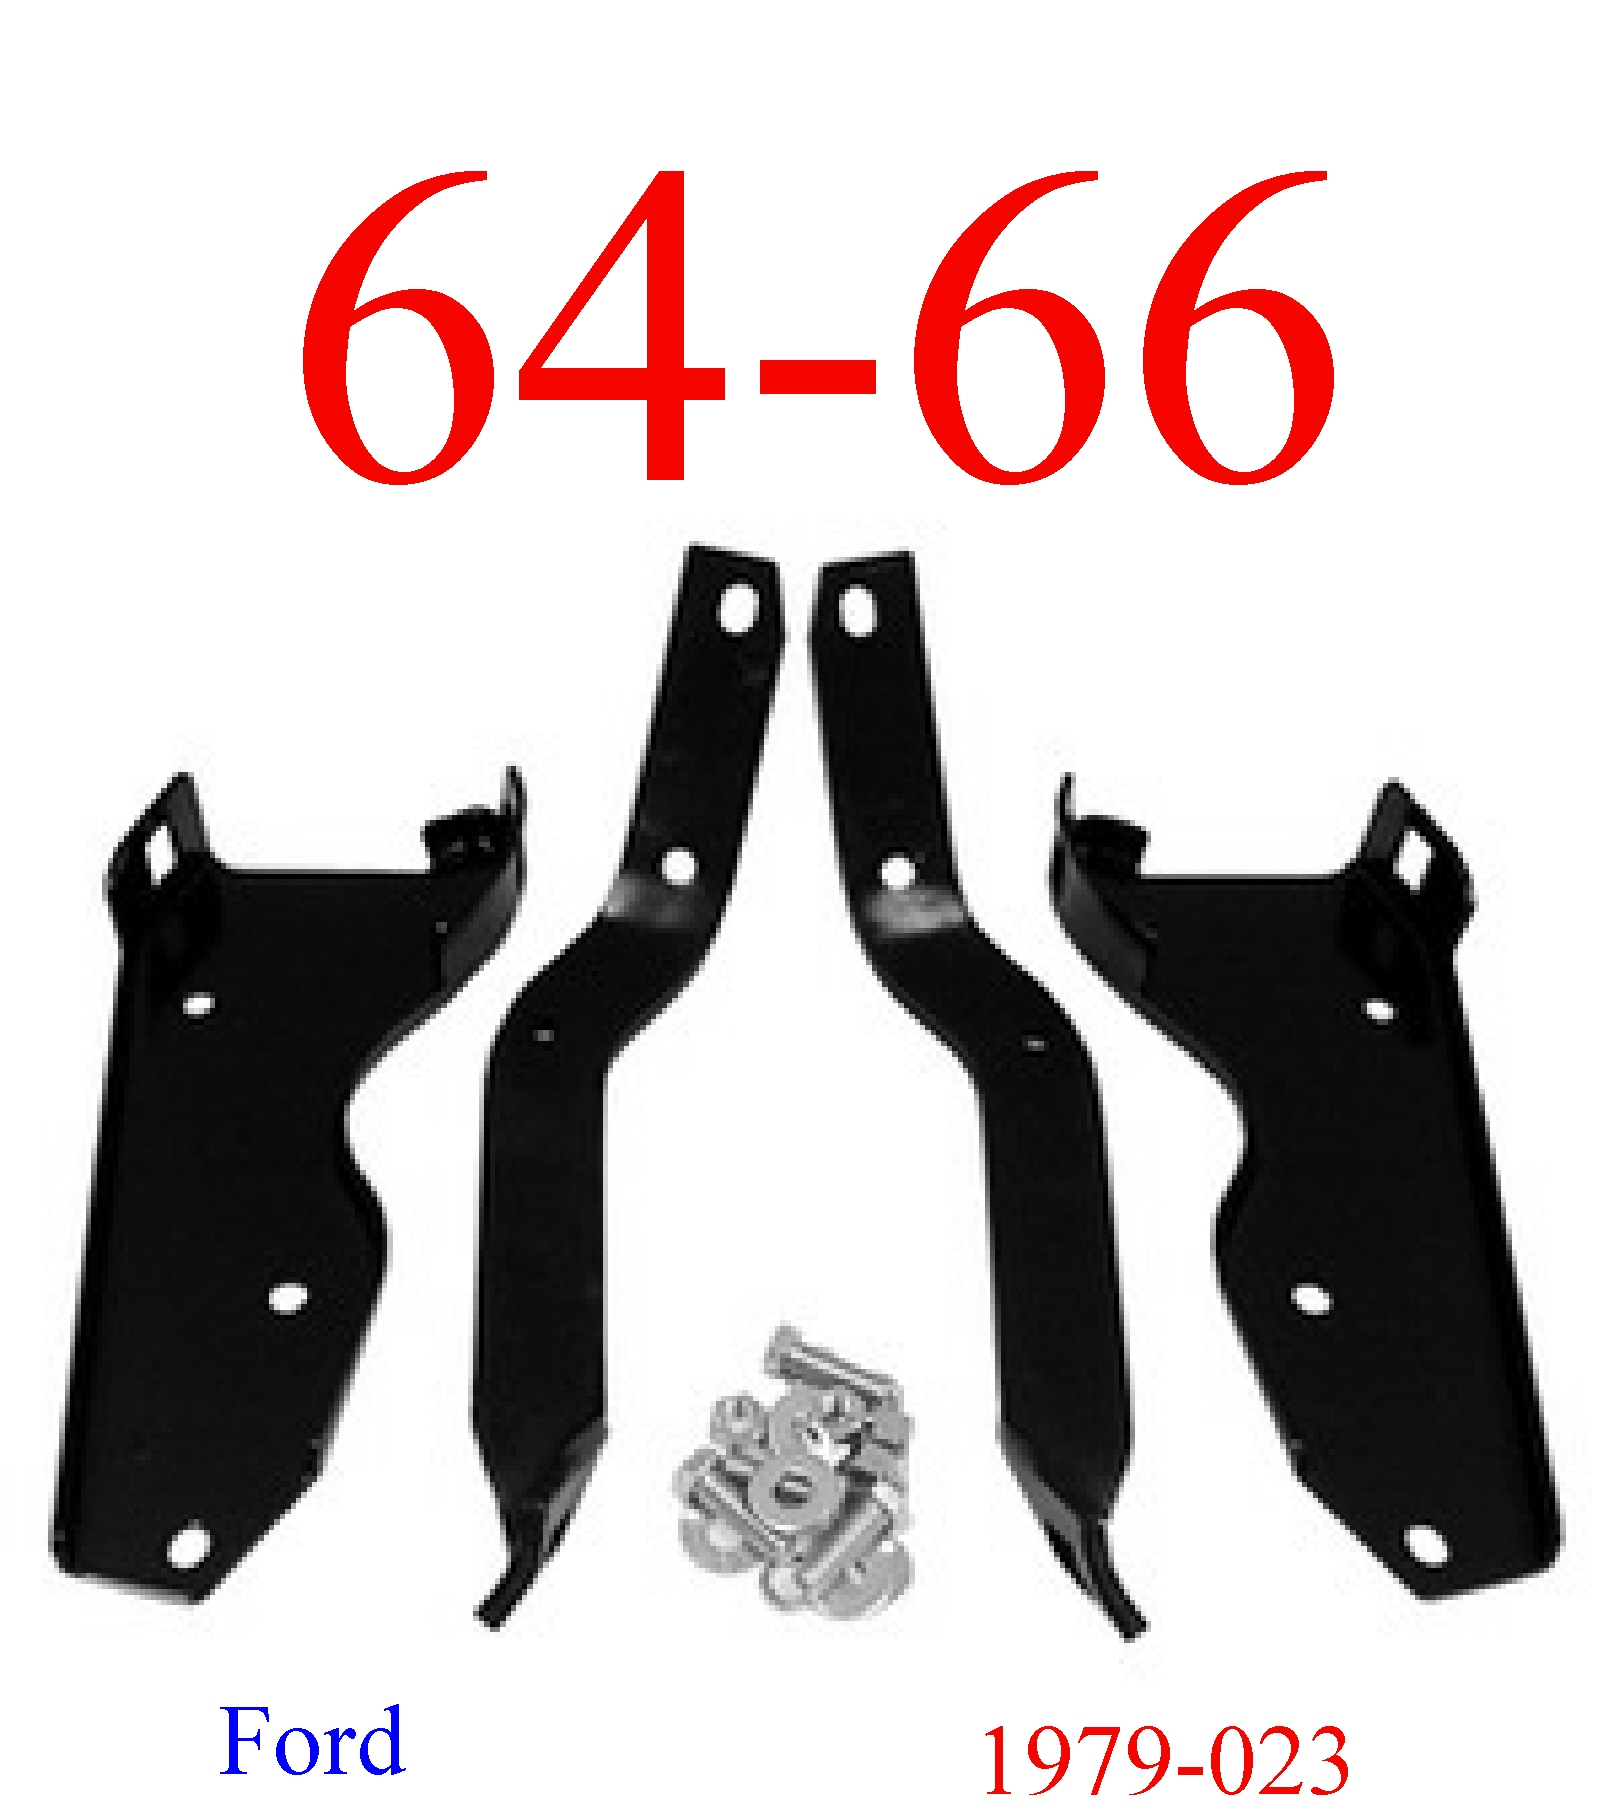 64-66 Ford Truck Rear Bumper Bracket & Bolt Kit